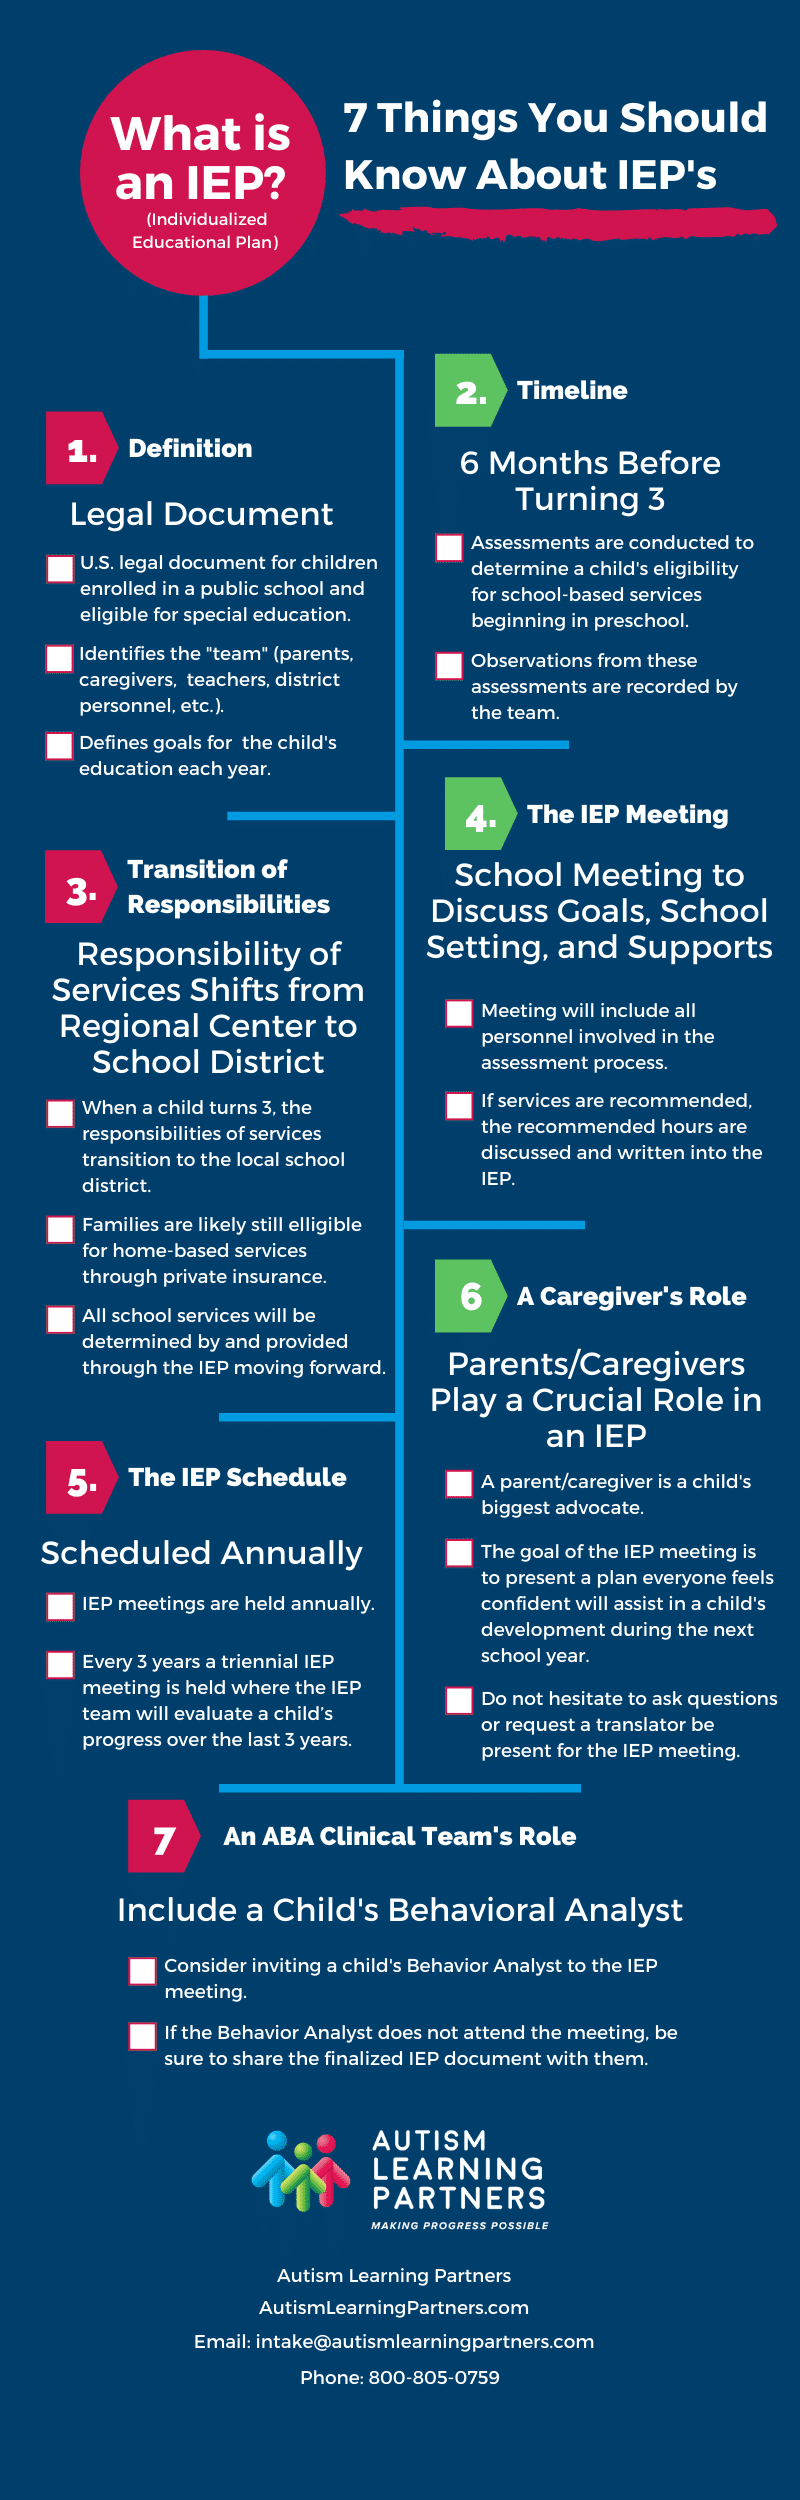 What's an IEP? Individualized Education Plan - Infographic